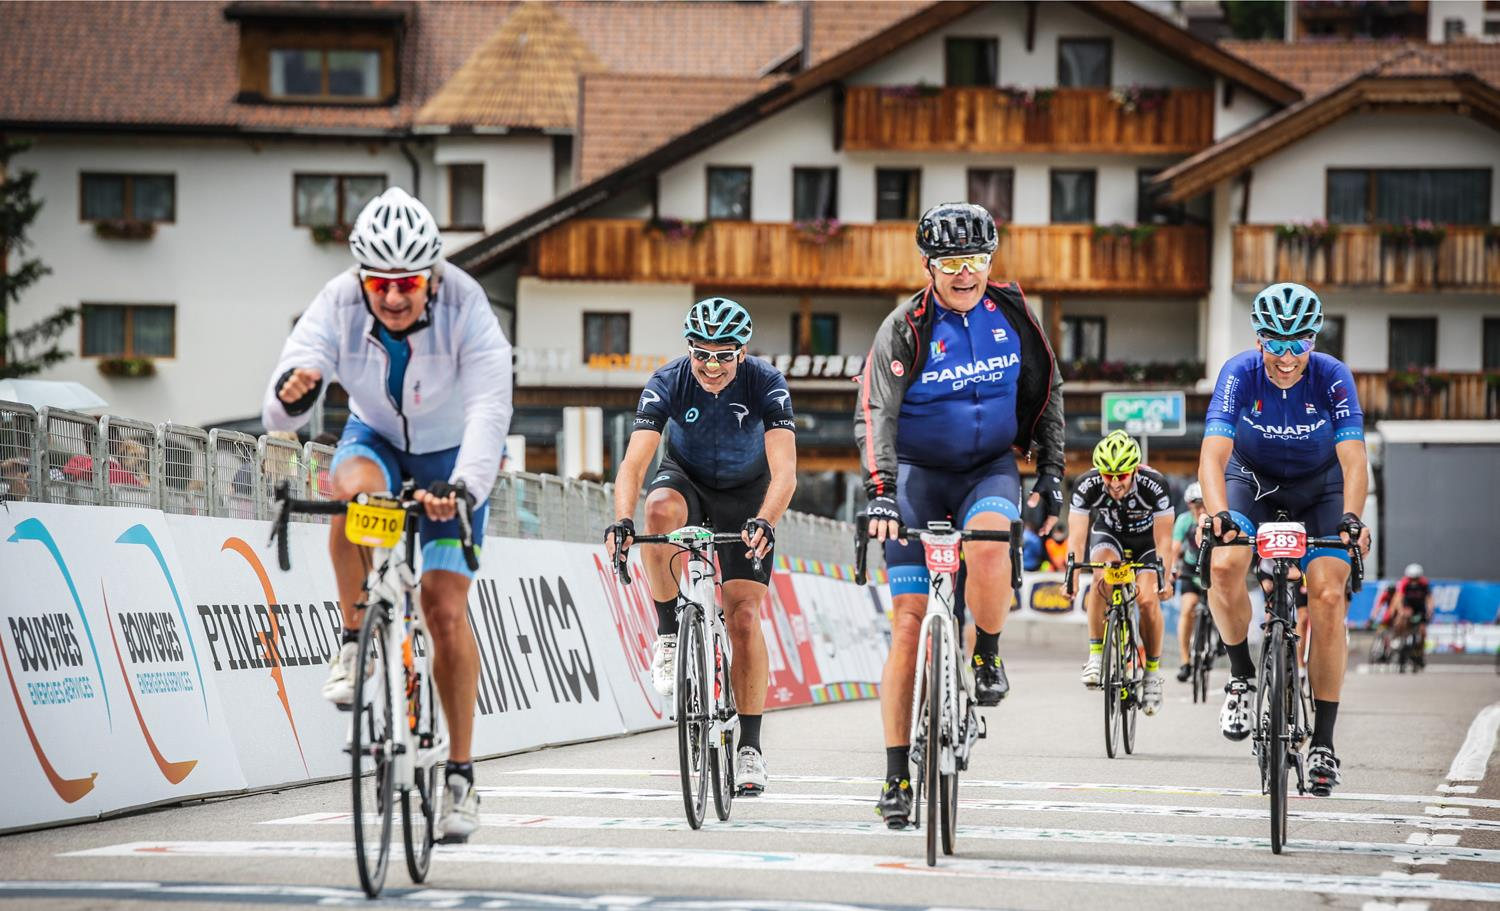 33° Maratona dles Dolomites-Enel: Photo 4